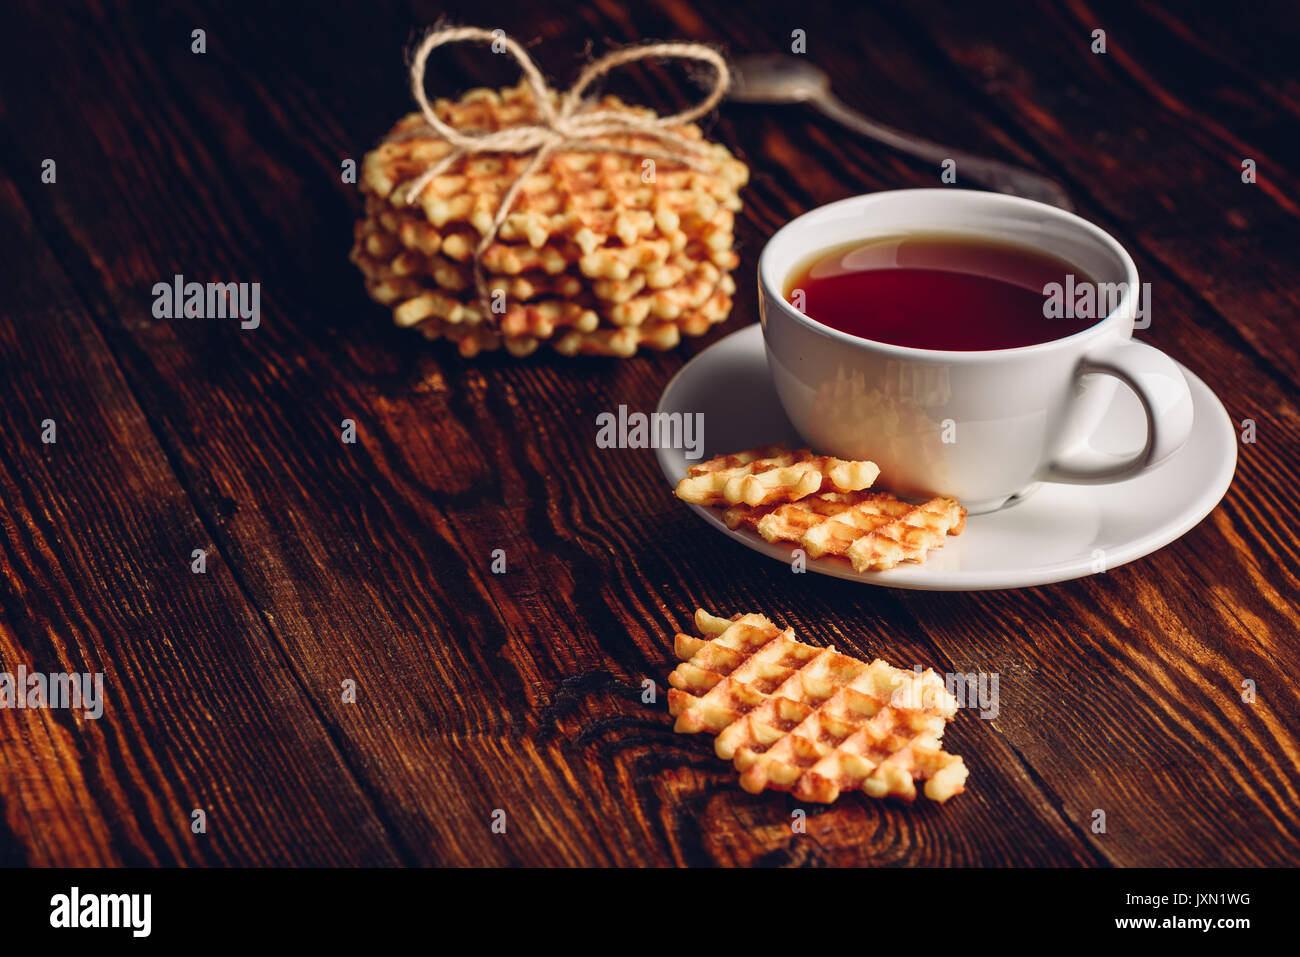 Dessert with White Cup of Tea and Waffle Stack and Waffles Pieces. Copy Space on the Left. - Stock Image